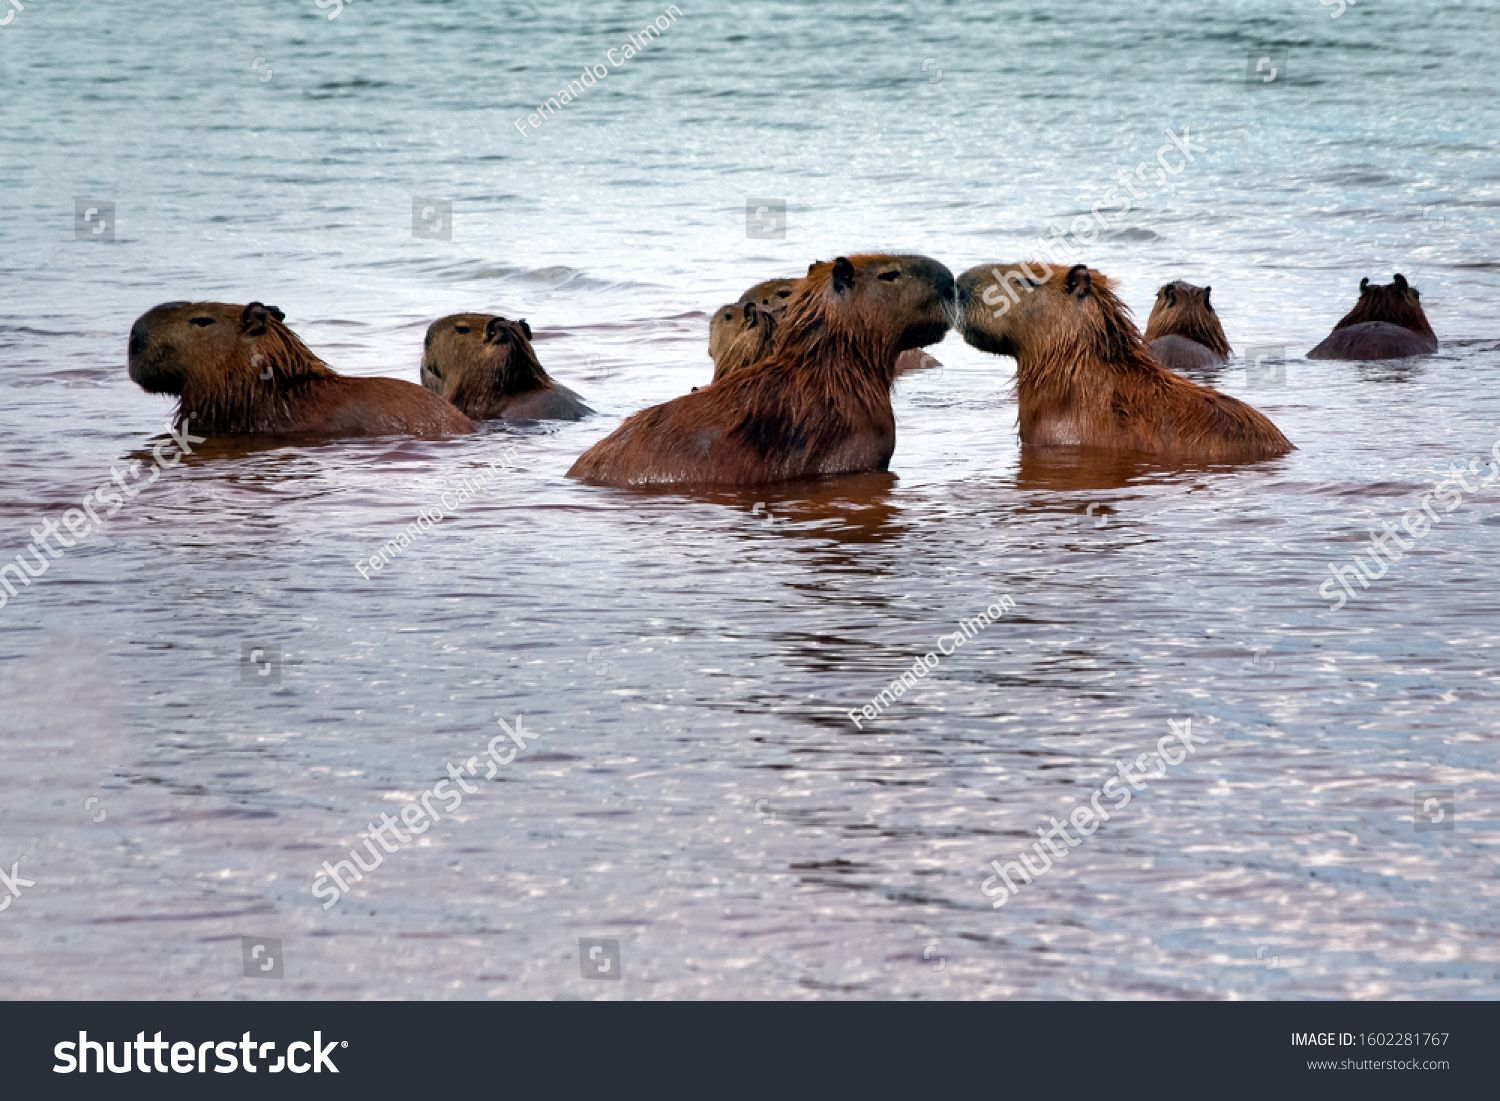 Two capybaras kissing while the rest of the herd enjoy Lake Parano¨¢ in Brasilia, Brazil. The capybara is the largest rodent in the world. Species Hydrochoerus hydrochaeris. Animal life. Cerrado. #Ad , #affiliate, #Parano#Lake#Brazil#Brasilia